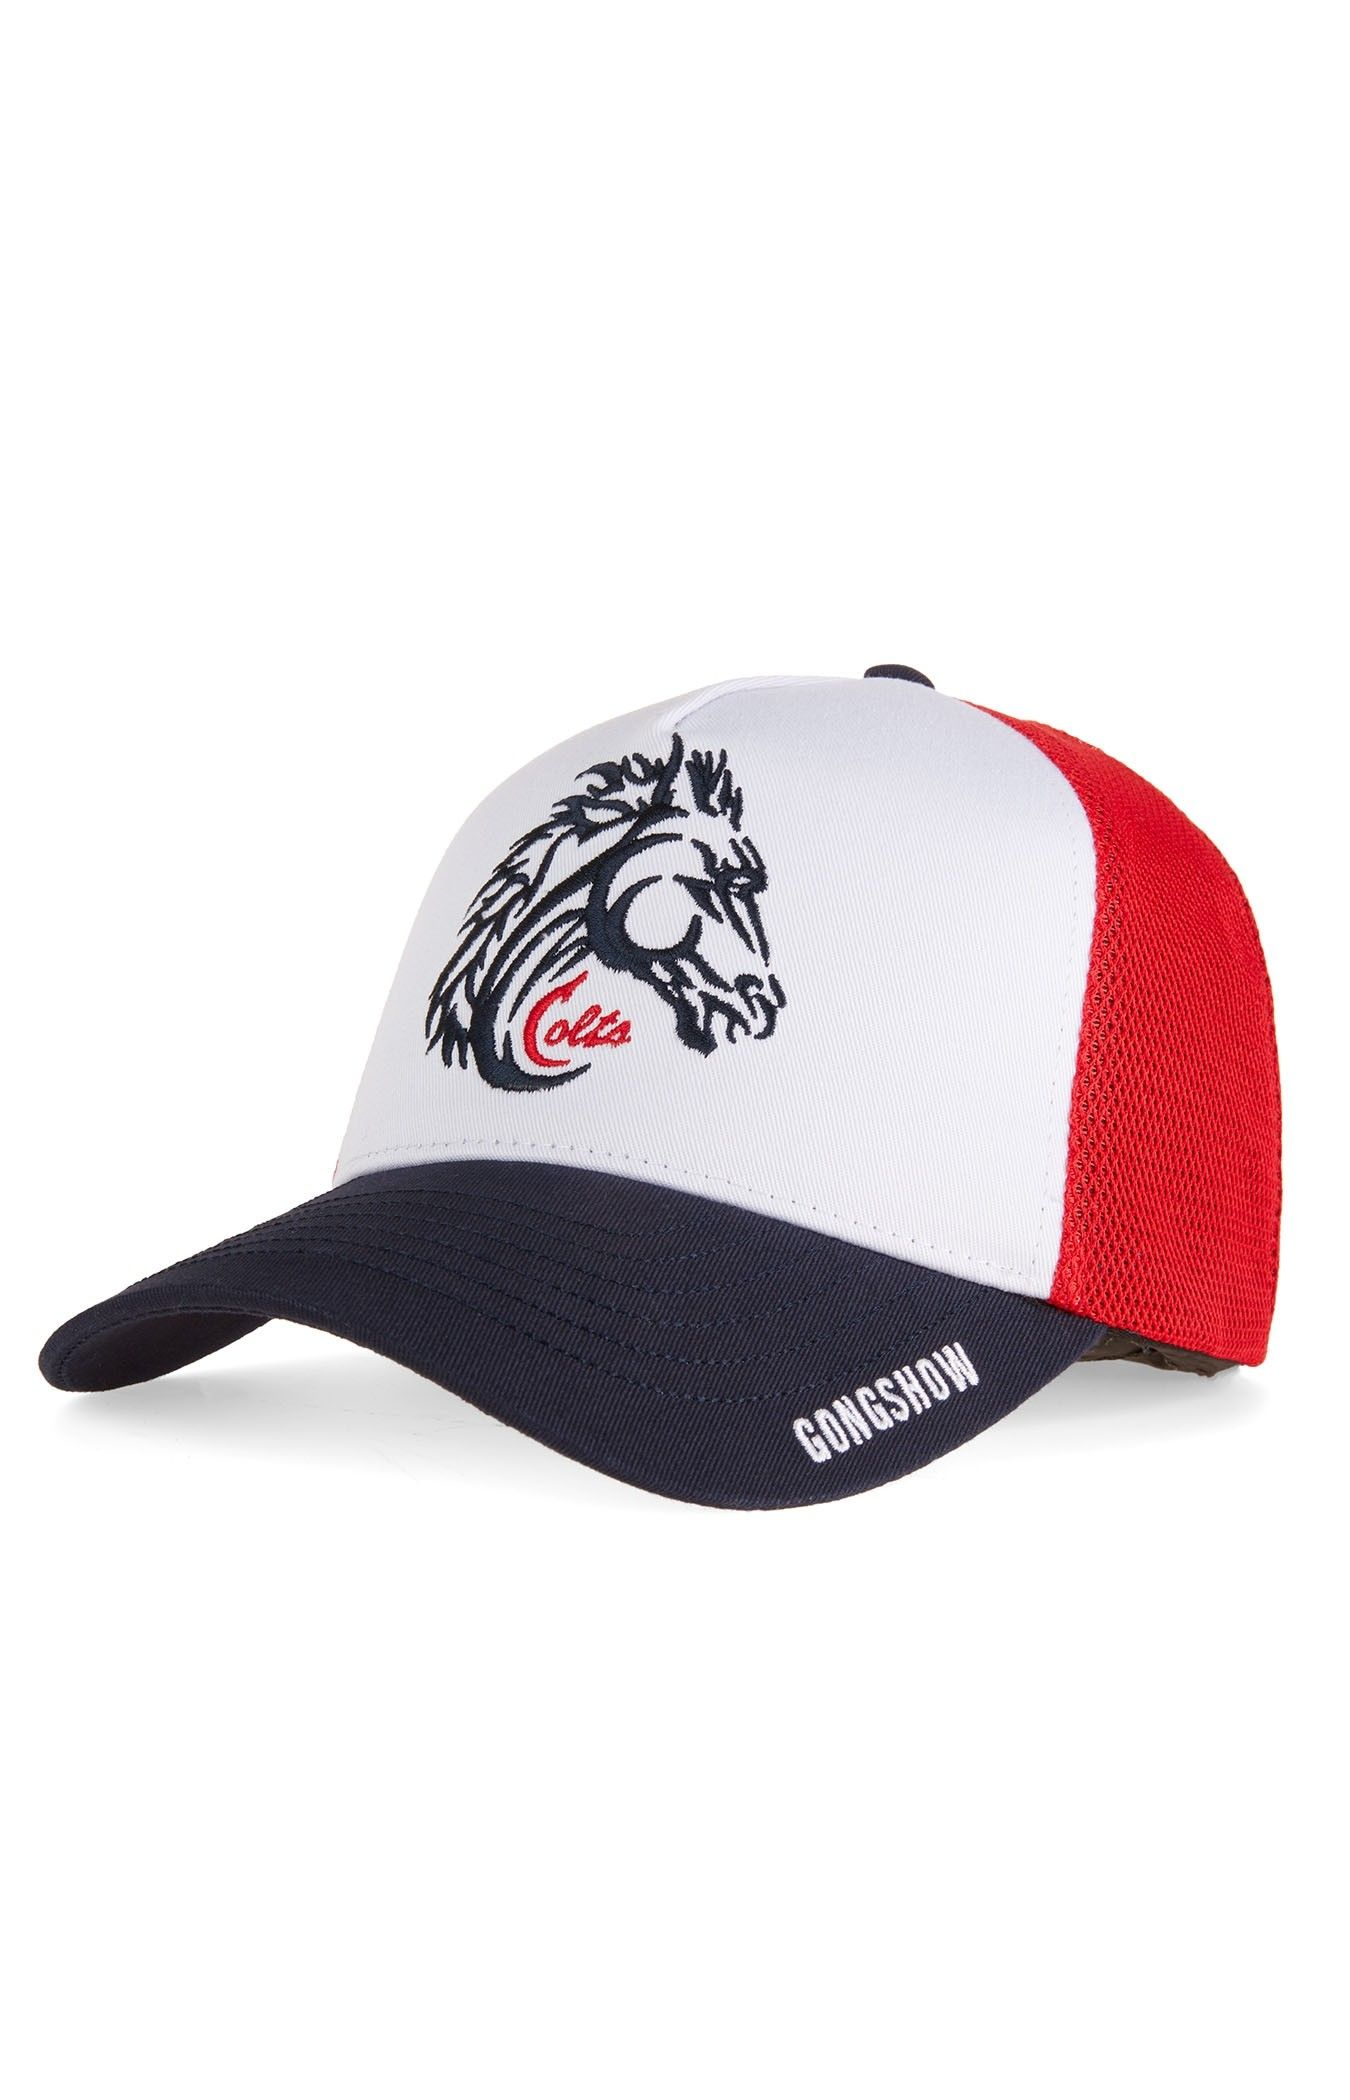 Gongshow Cornwall Colts Official CCHL White Hockey Hat  a795fcfec3d6